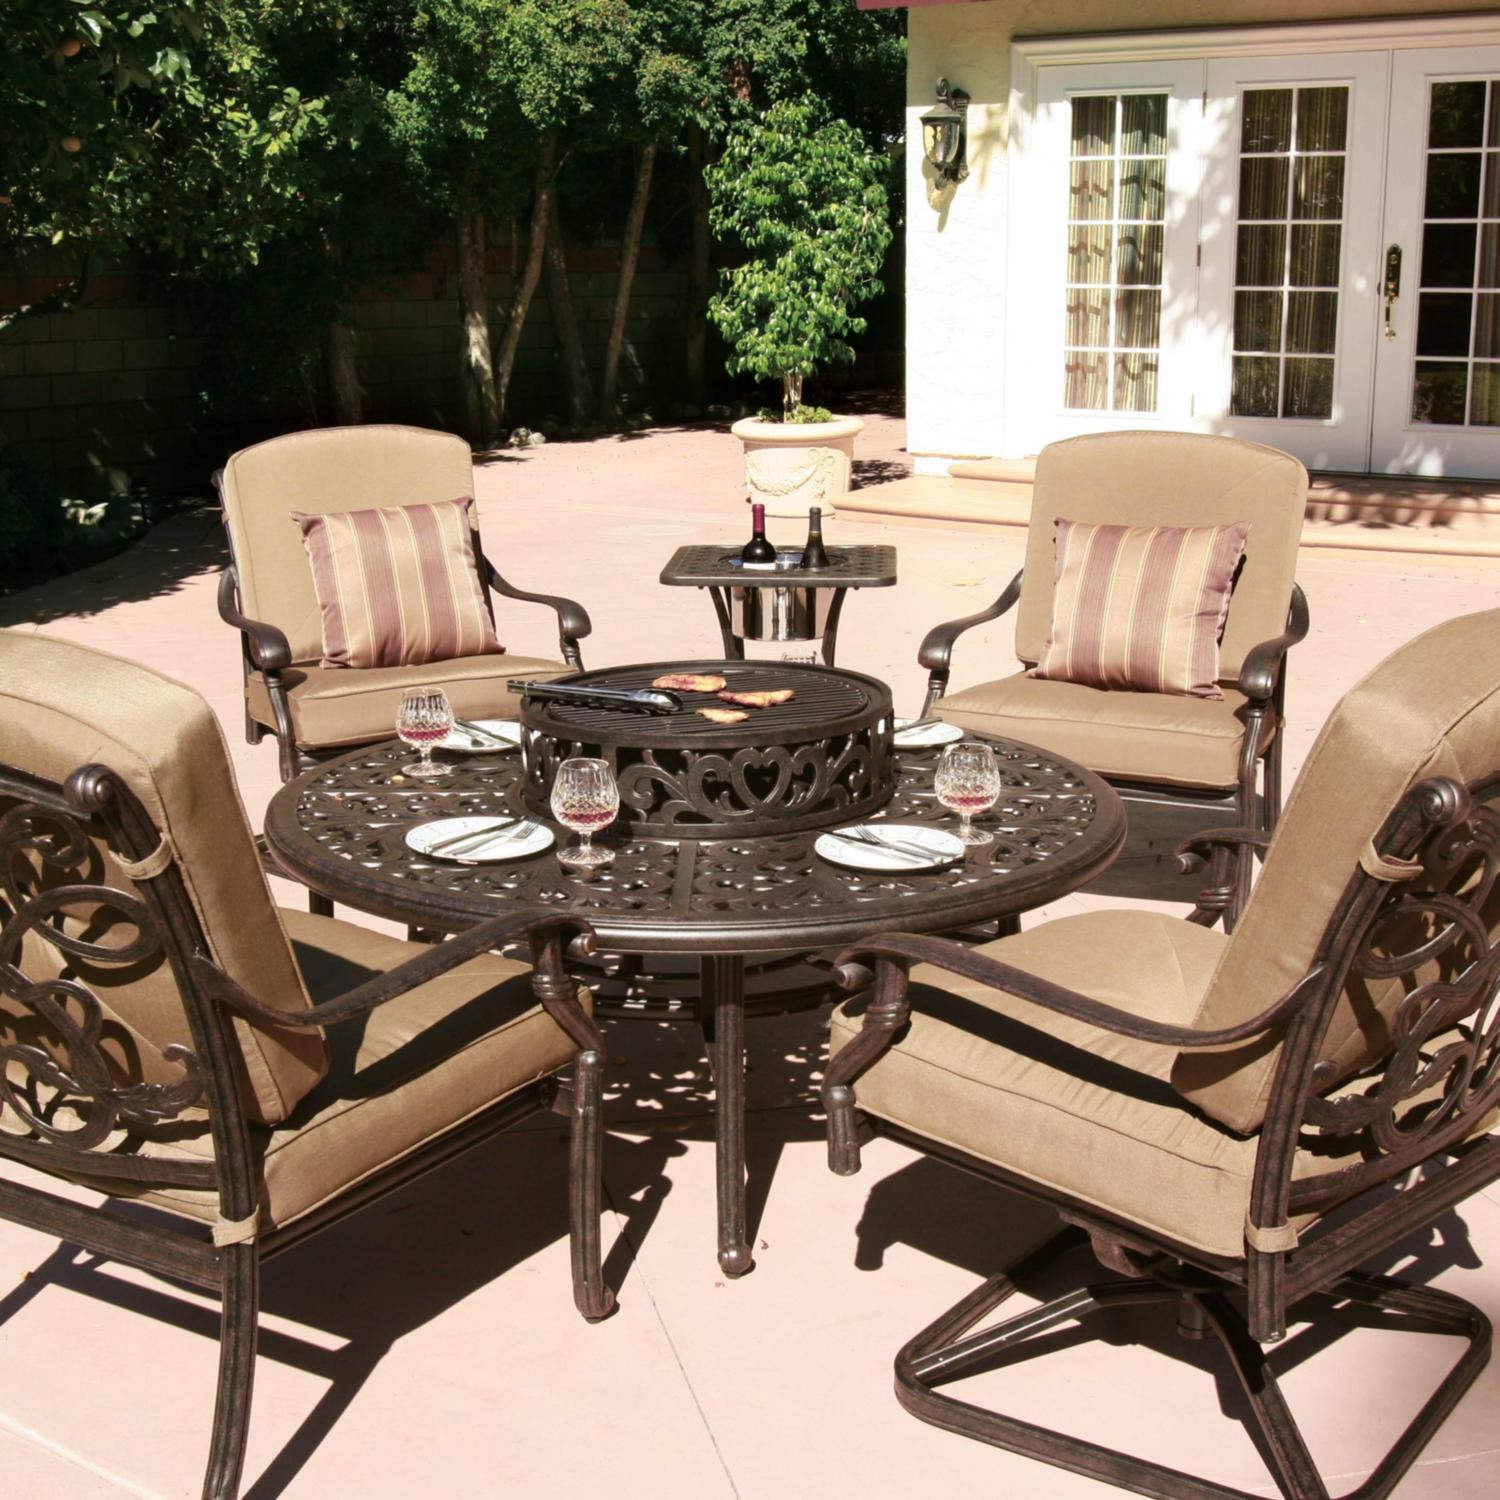 Best ideas about Patio Furniture Set . Save or Pin patio furniture sets with fire pit Now.